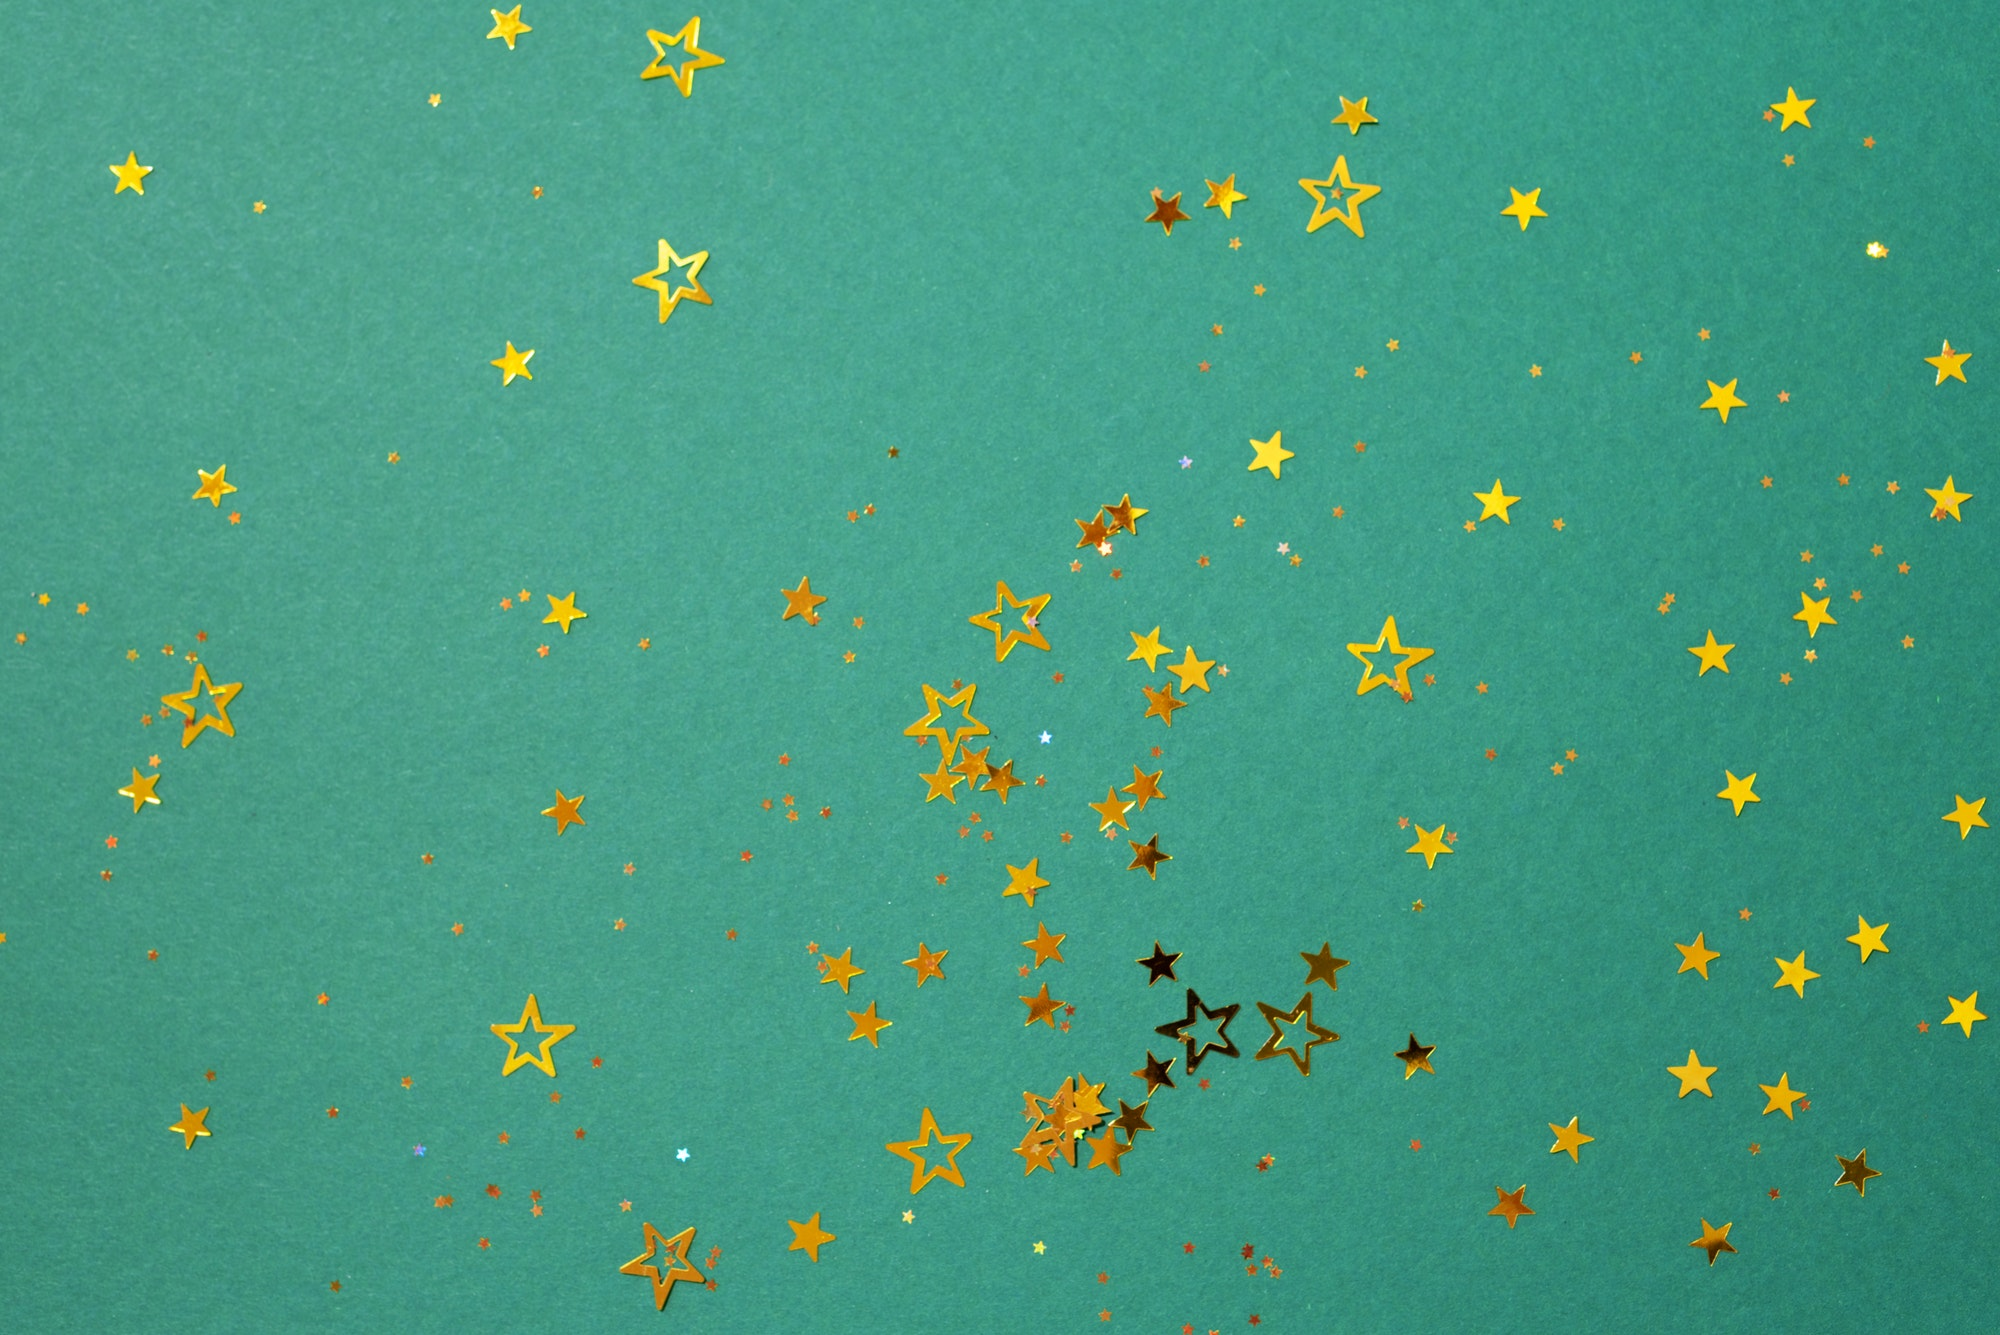 Golden star sparkles on green background